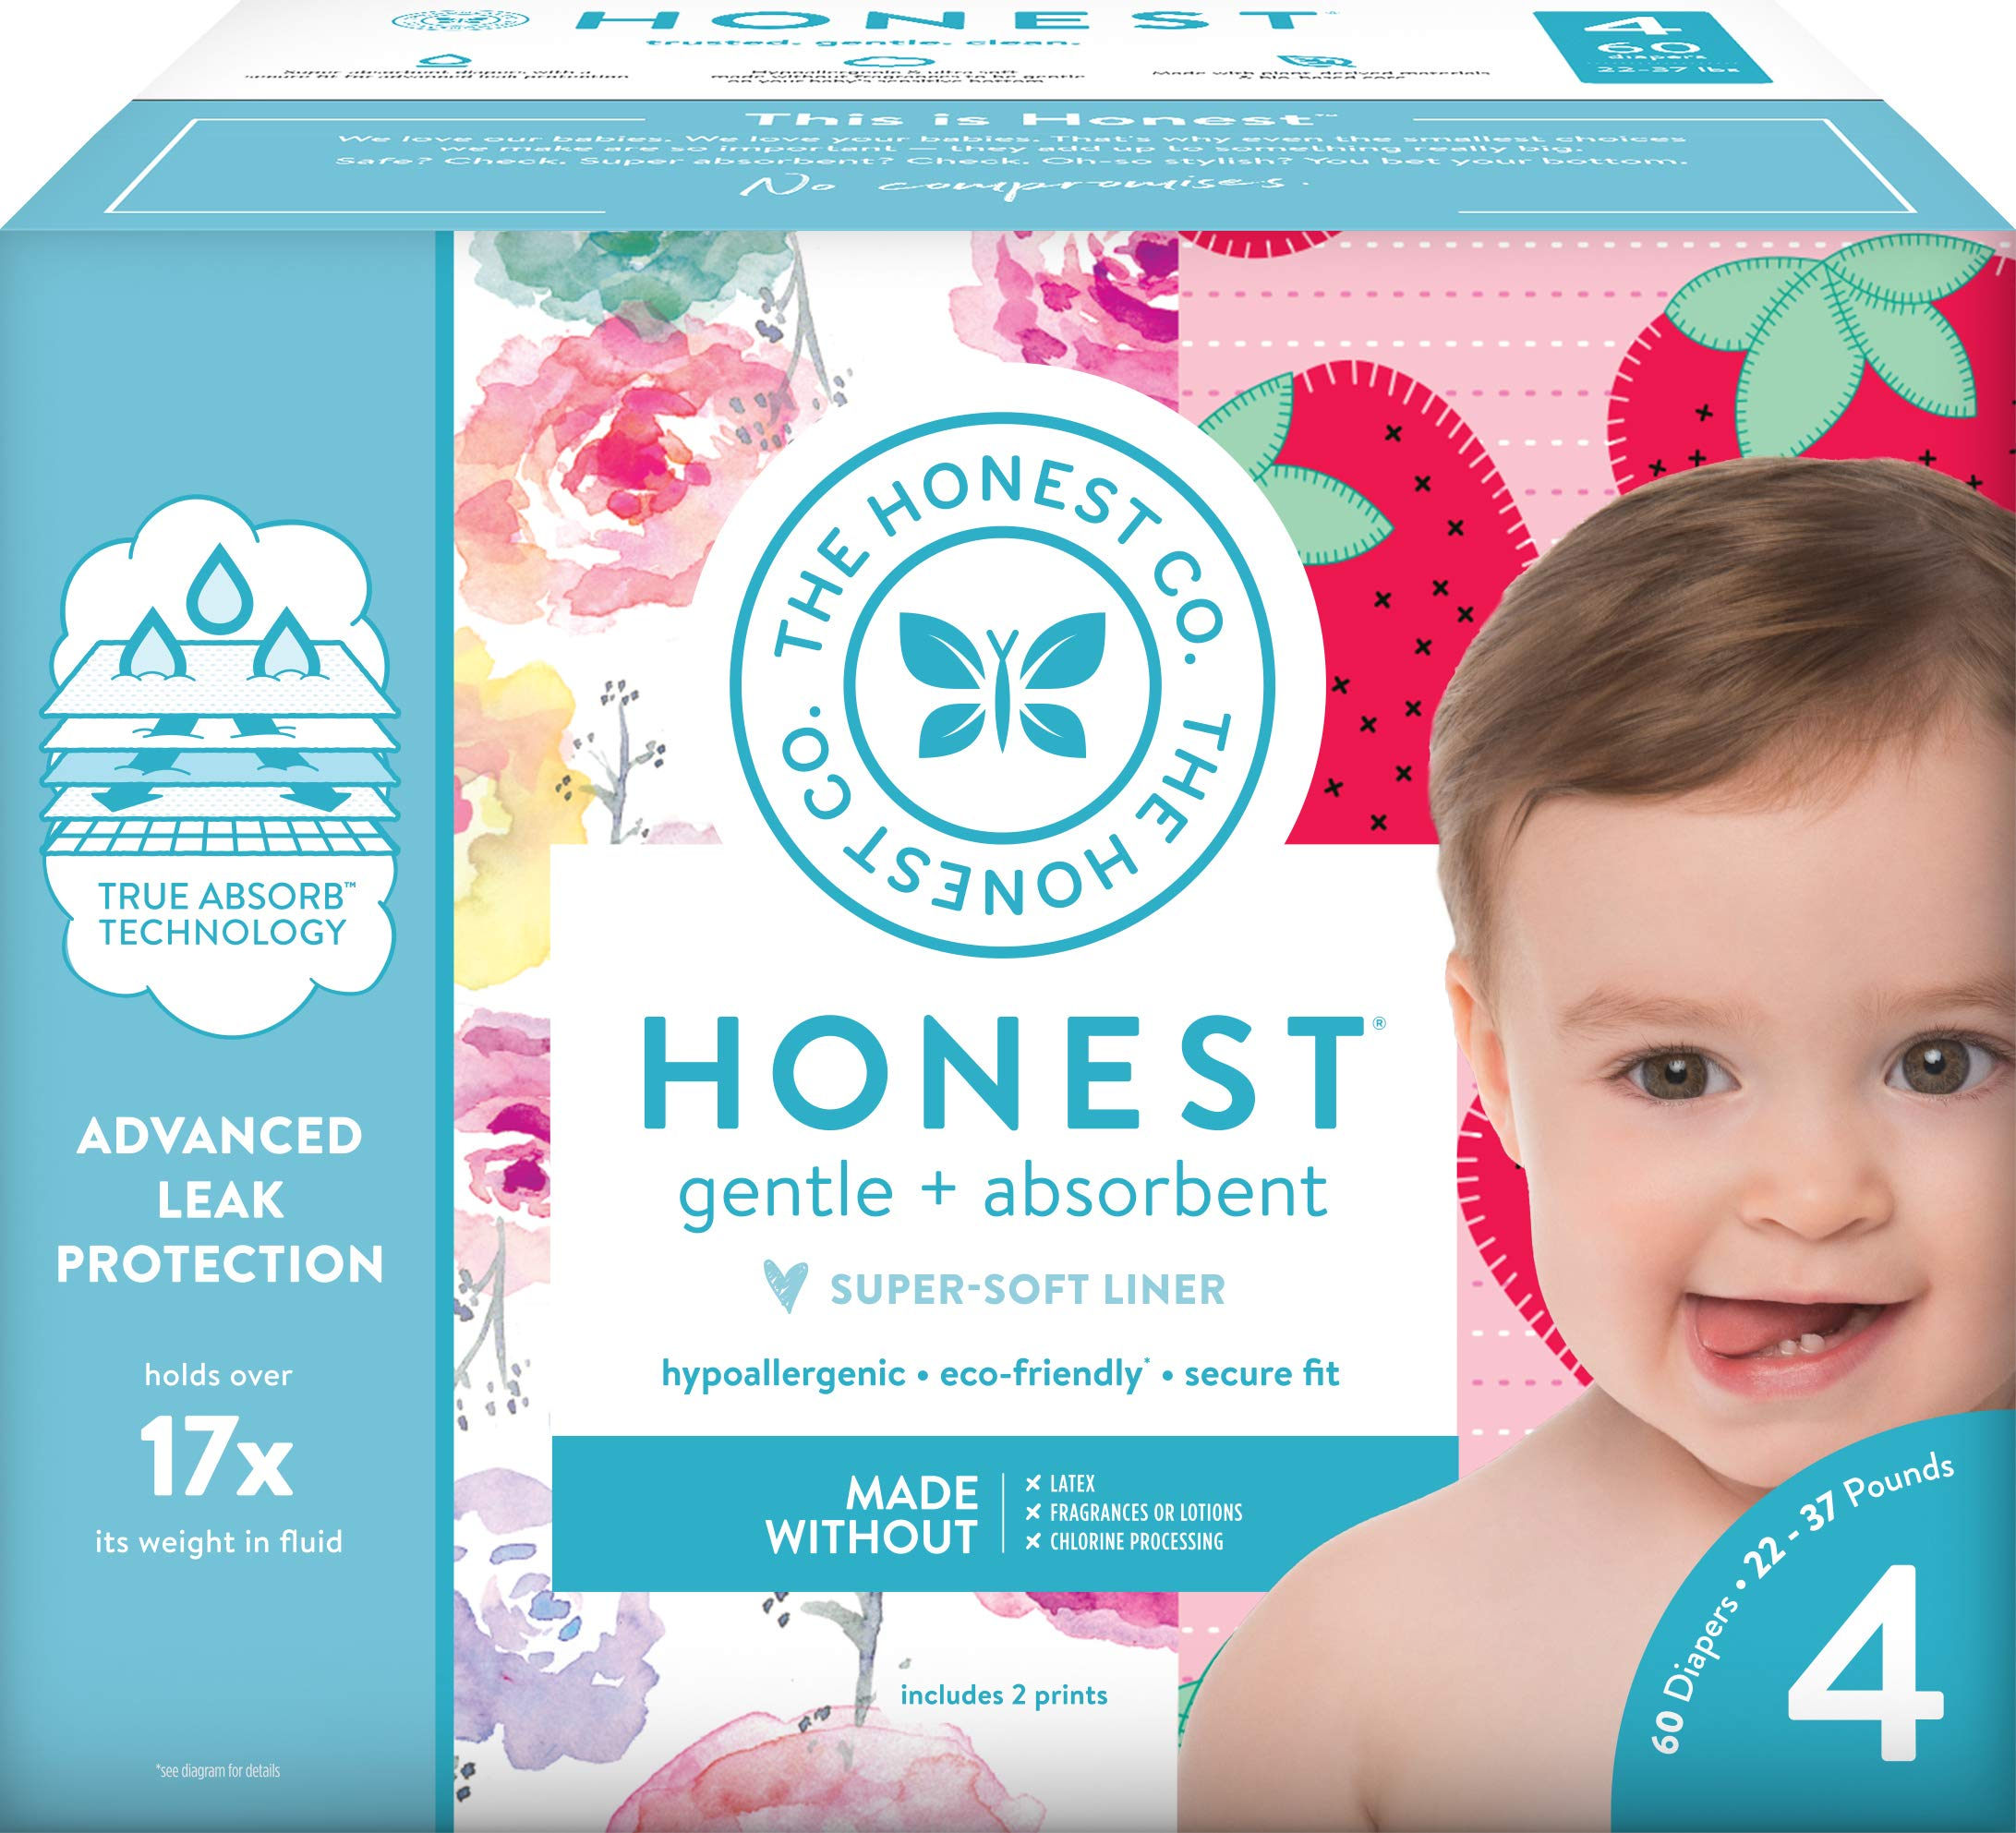 The Honest Company Club Box - Size 4 - Rose Blossom & Strawberries Print with TrueAbsorb Technology | Plant-Derived Materials | Hypoallergenic | 60 Count by The Honest Company